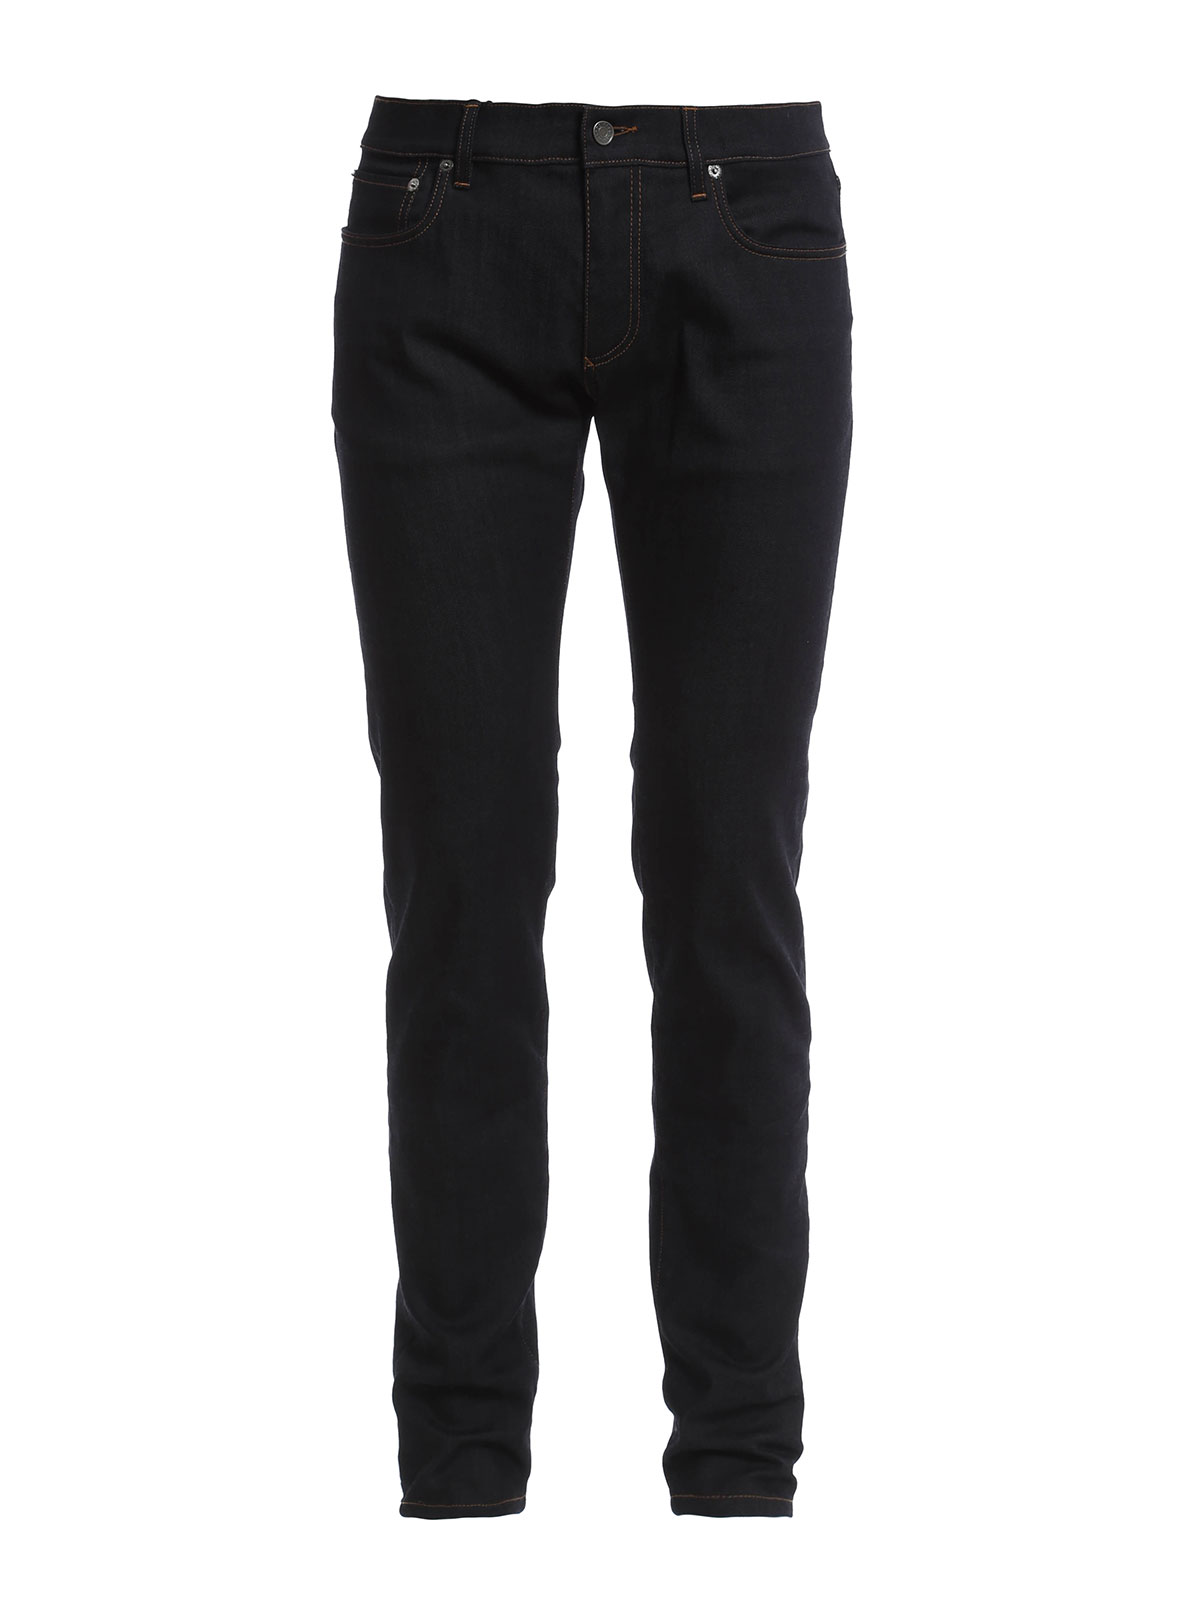 low waist jeans by dolce gabbana straight leg jeans. Black Bedroom Furniture Sets. Home Design Ideas